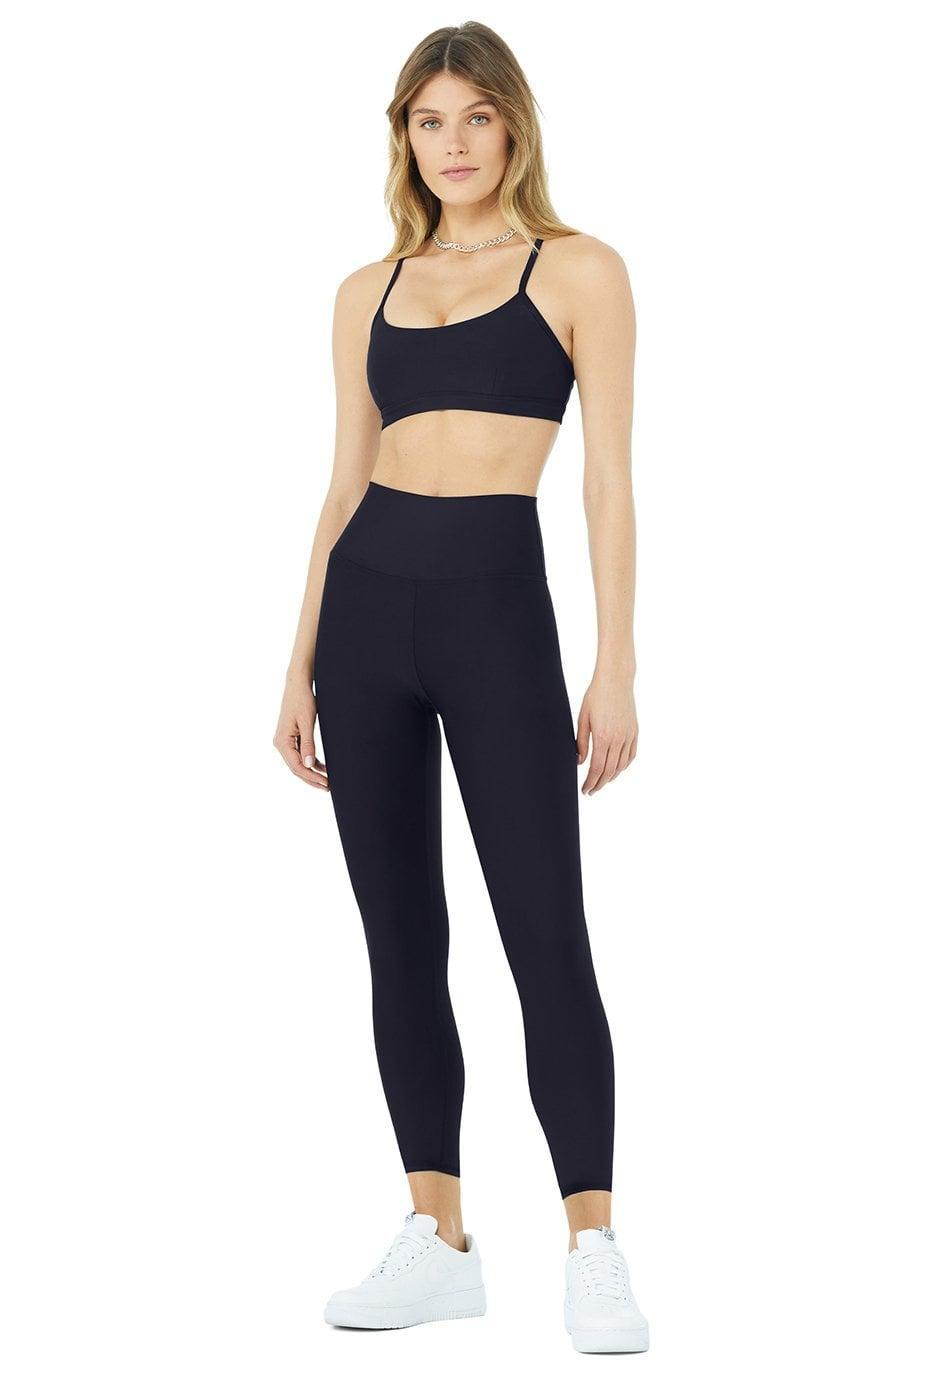 <p>We love the cool dark blue color and buttery soft fabric of this <span>Alo Airlift Intrigue Bra &amp; 7/8 High-Waist Airlift Legging Set</span> ($168). It's useful for sweaty workouts or running errands around town.</p>